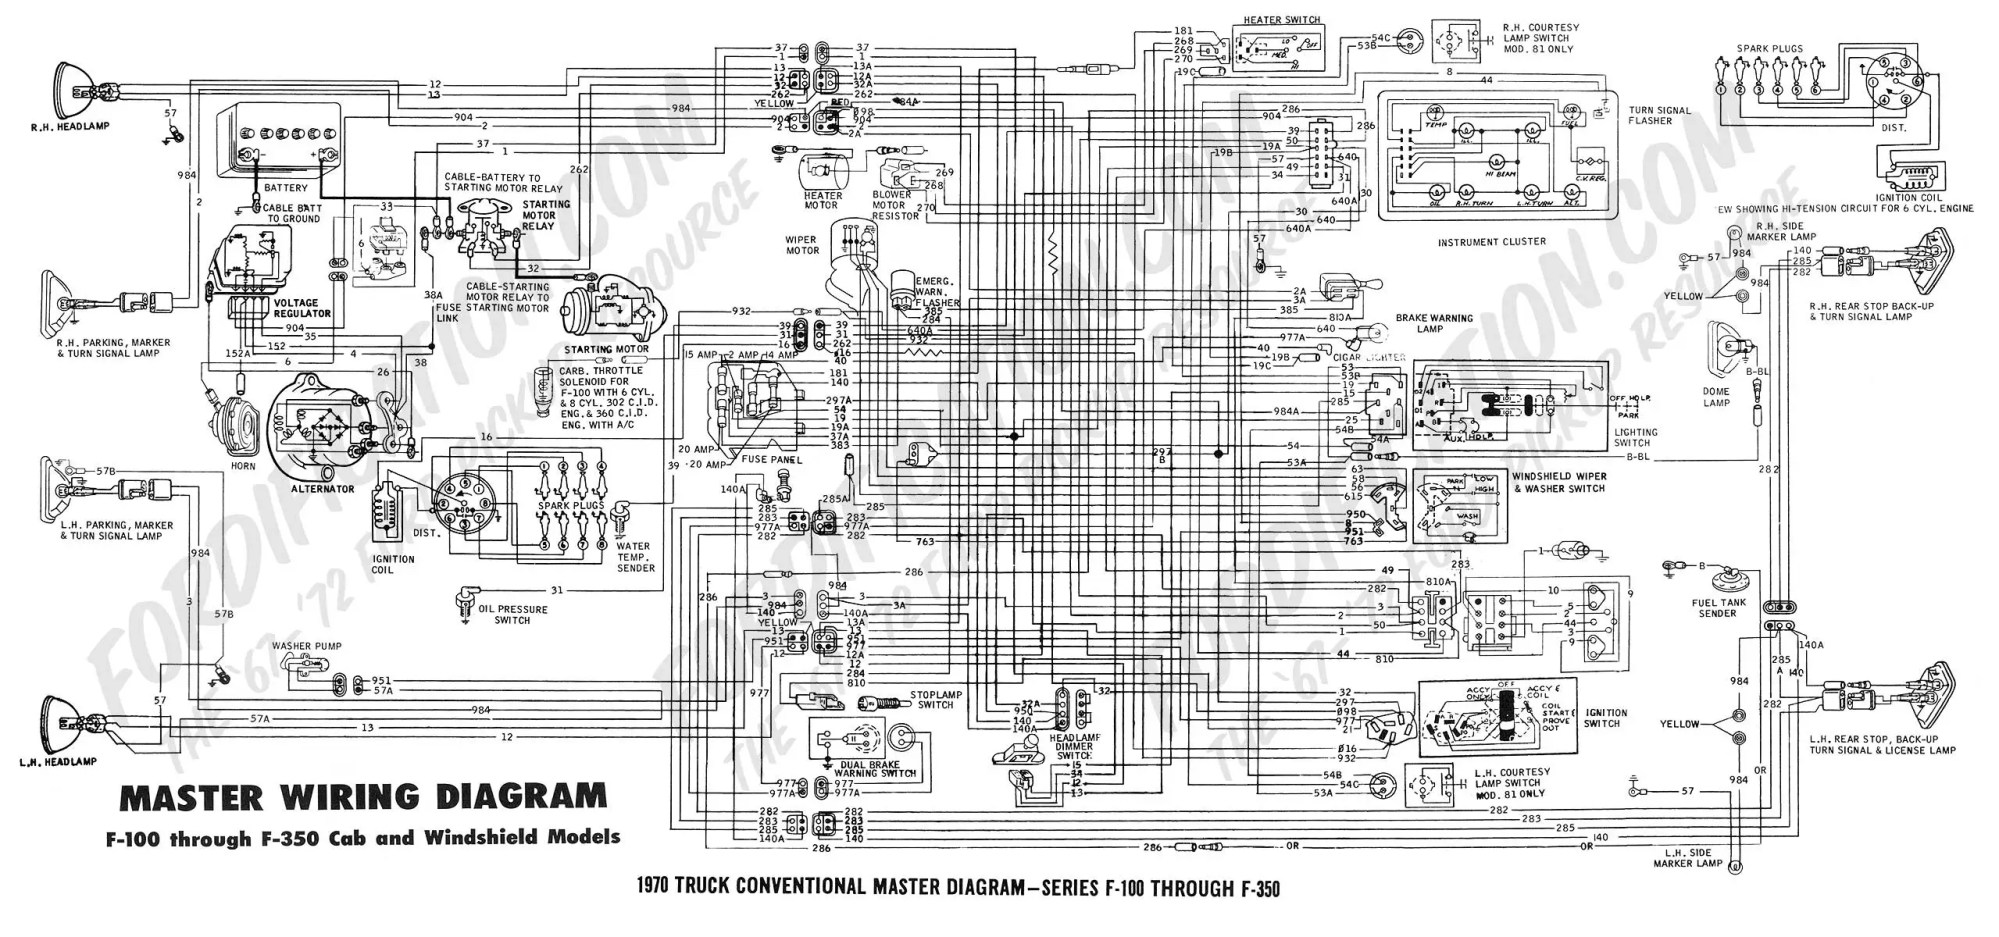 hight resolution of wiring diagram ford f150 simple wiring schema 2001 f150 wiring diagram pdf 2002 ford f150 wiring diagram